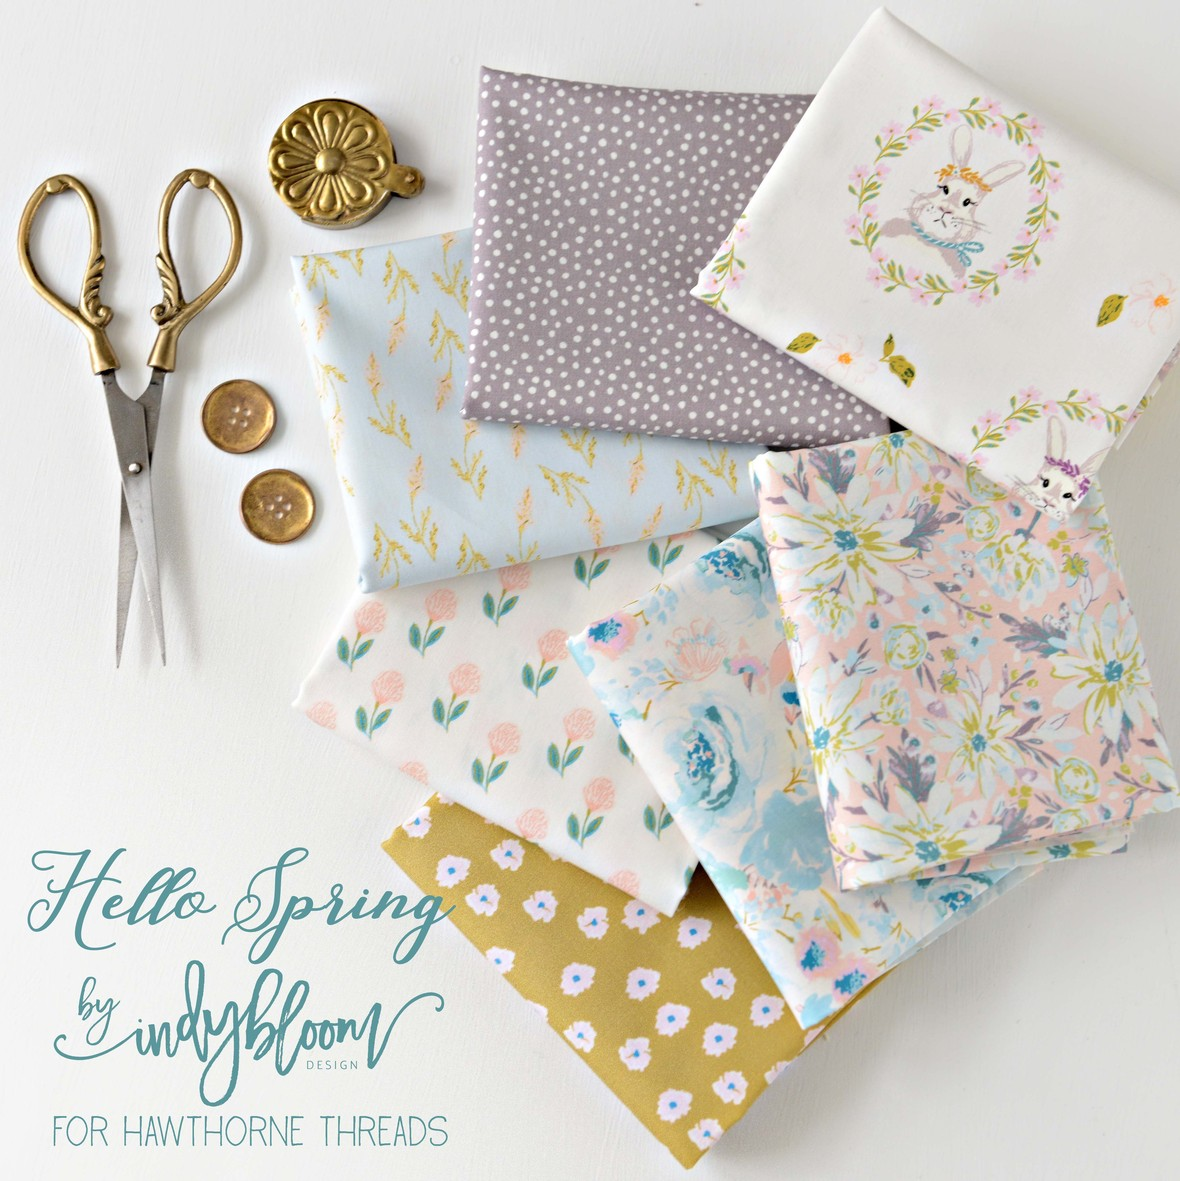 Indy Bloom for Hawthorne Threads Hello Spring Fabric Poster and Logo